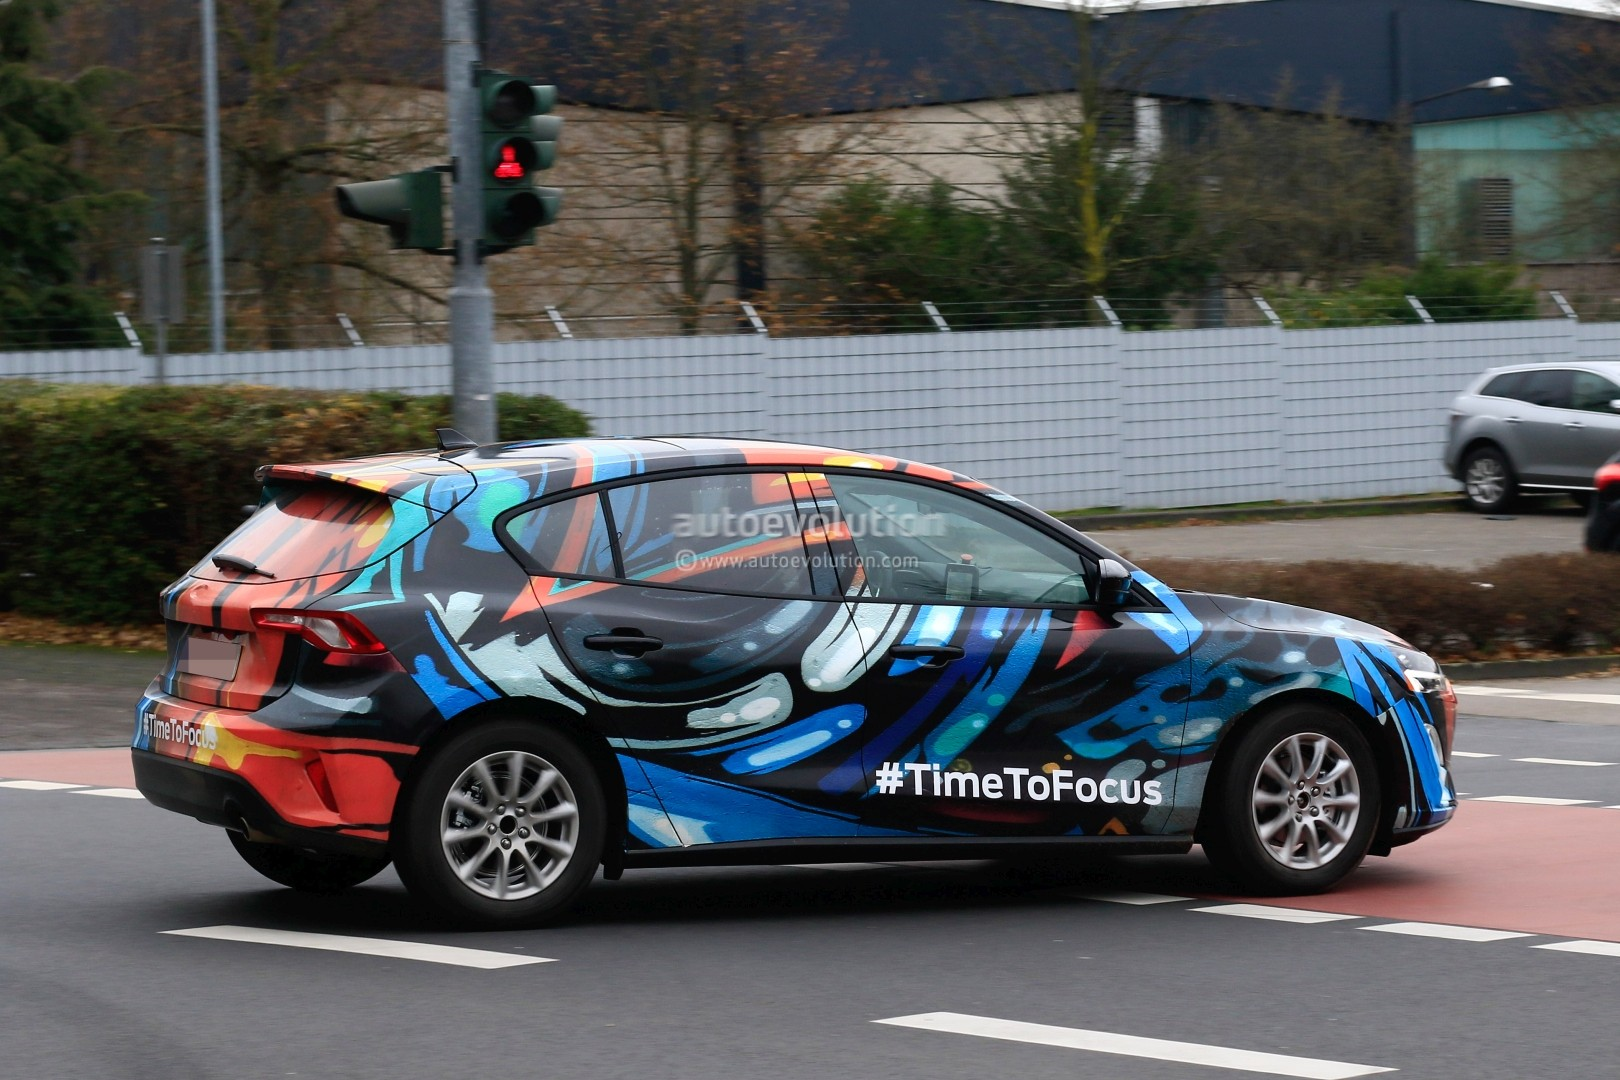 2019 Ford Focus (Mk4) To Debut In First Half Of 2018 - autoevolution